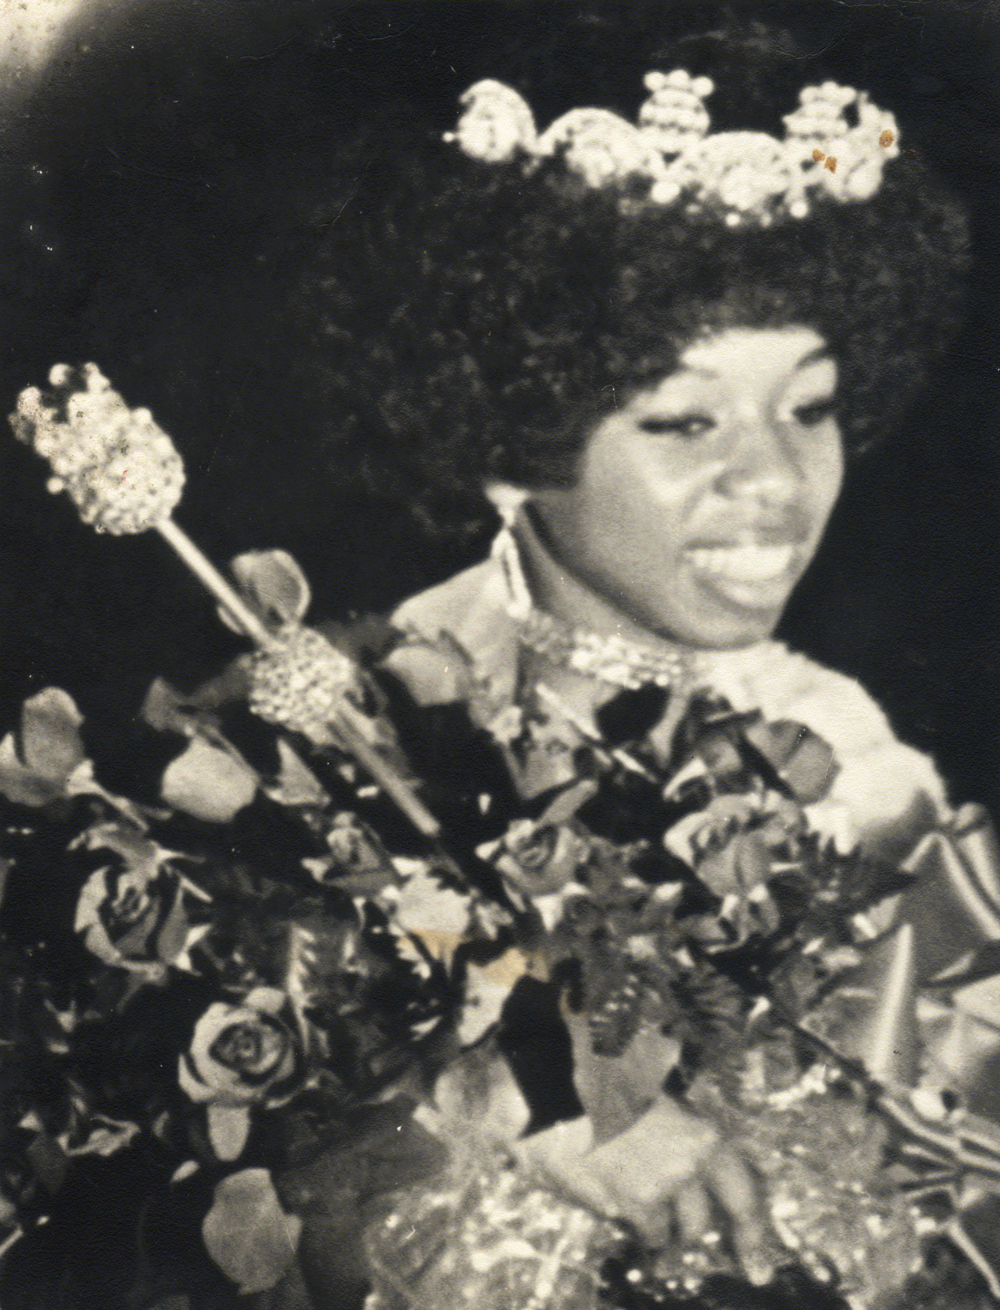 Ms. Thomas began her career in 1976 by producing a play for the U.S. Bicentennial in response to the Ebony Magazine cover story, What Did Blacks Contribute? She traced the history of Black women in fashion from the Great Queens of Africa, Cleopatra, Nefertiti and Makeda to Aretha, The Queen of Soul.